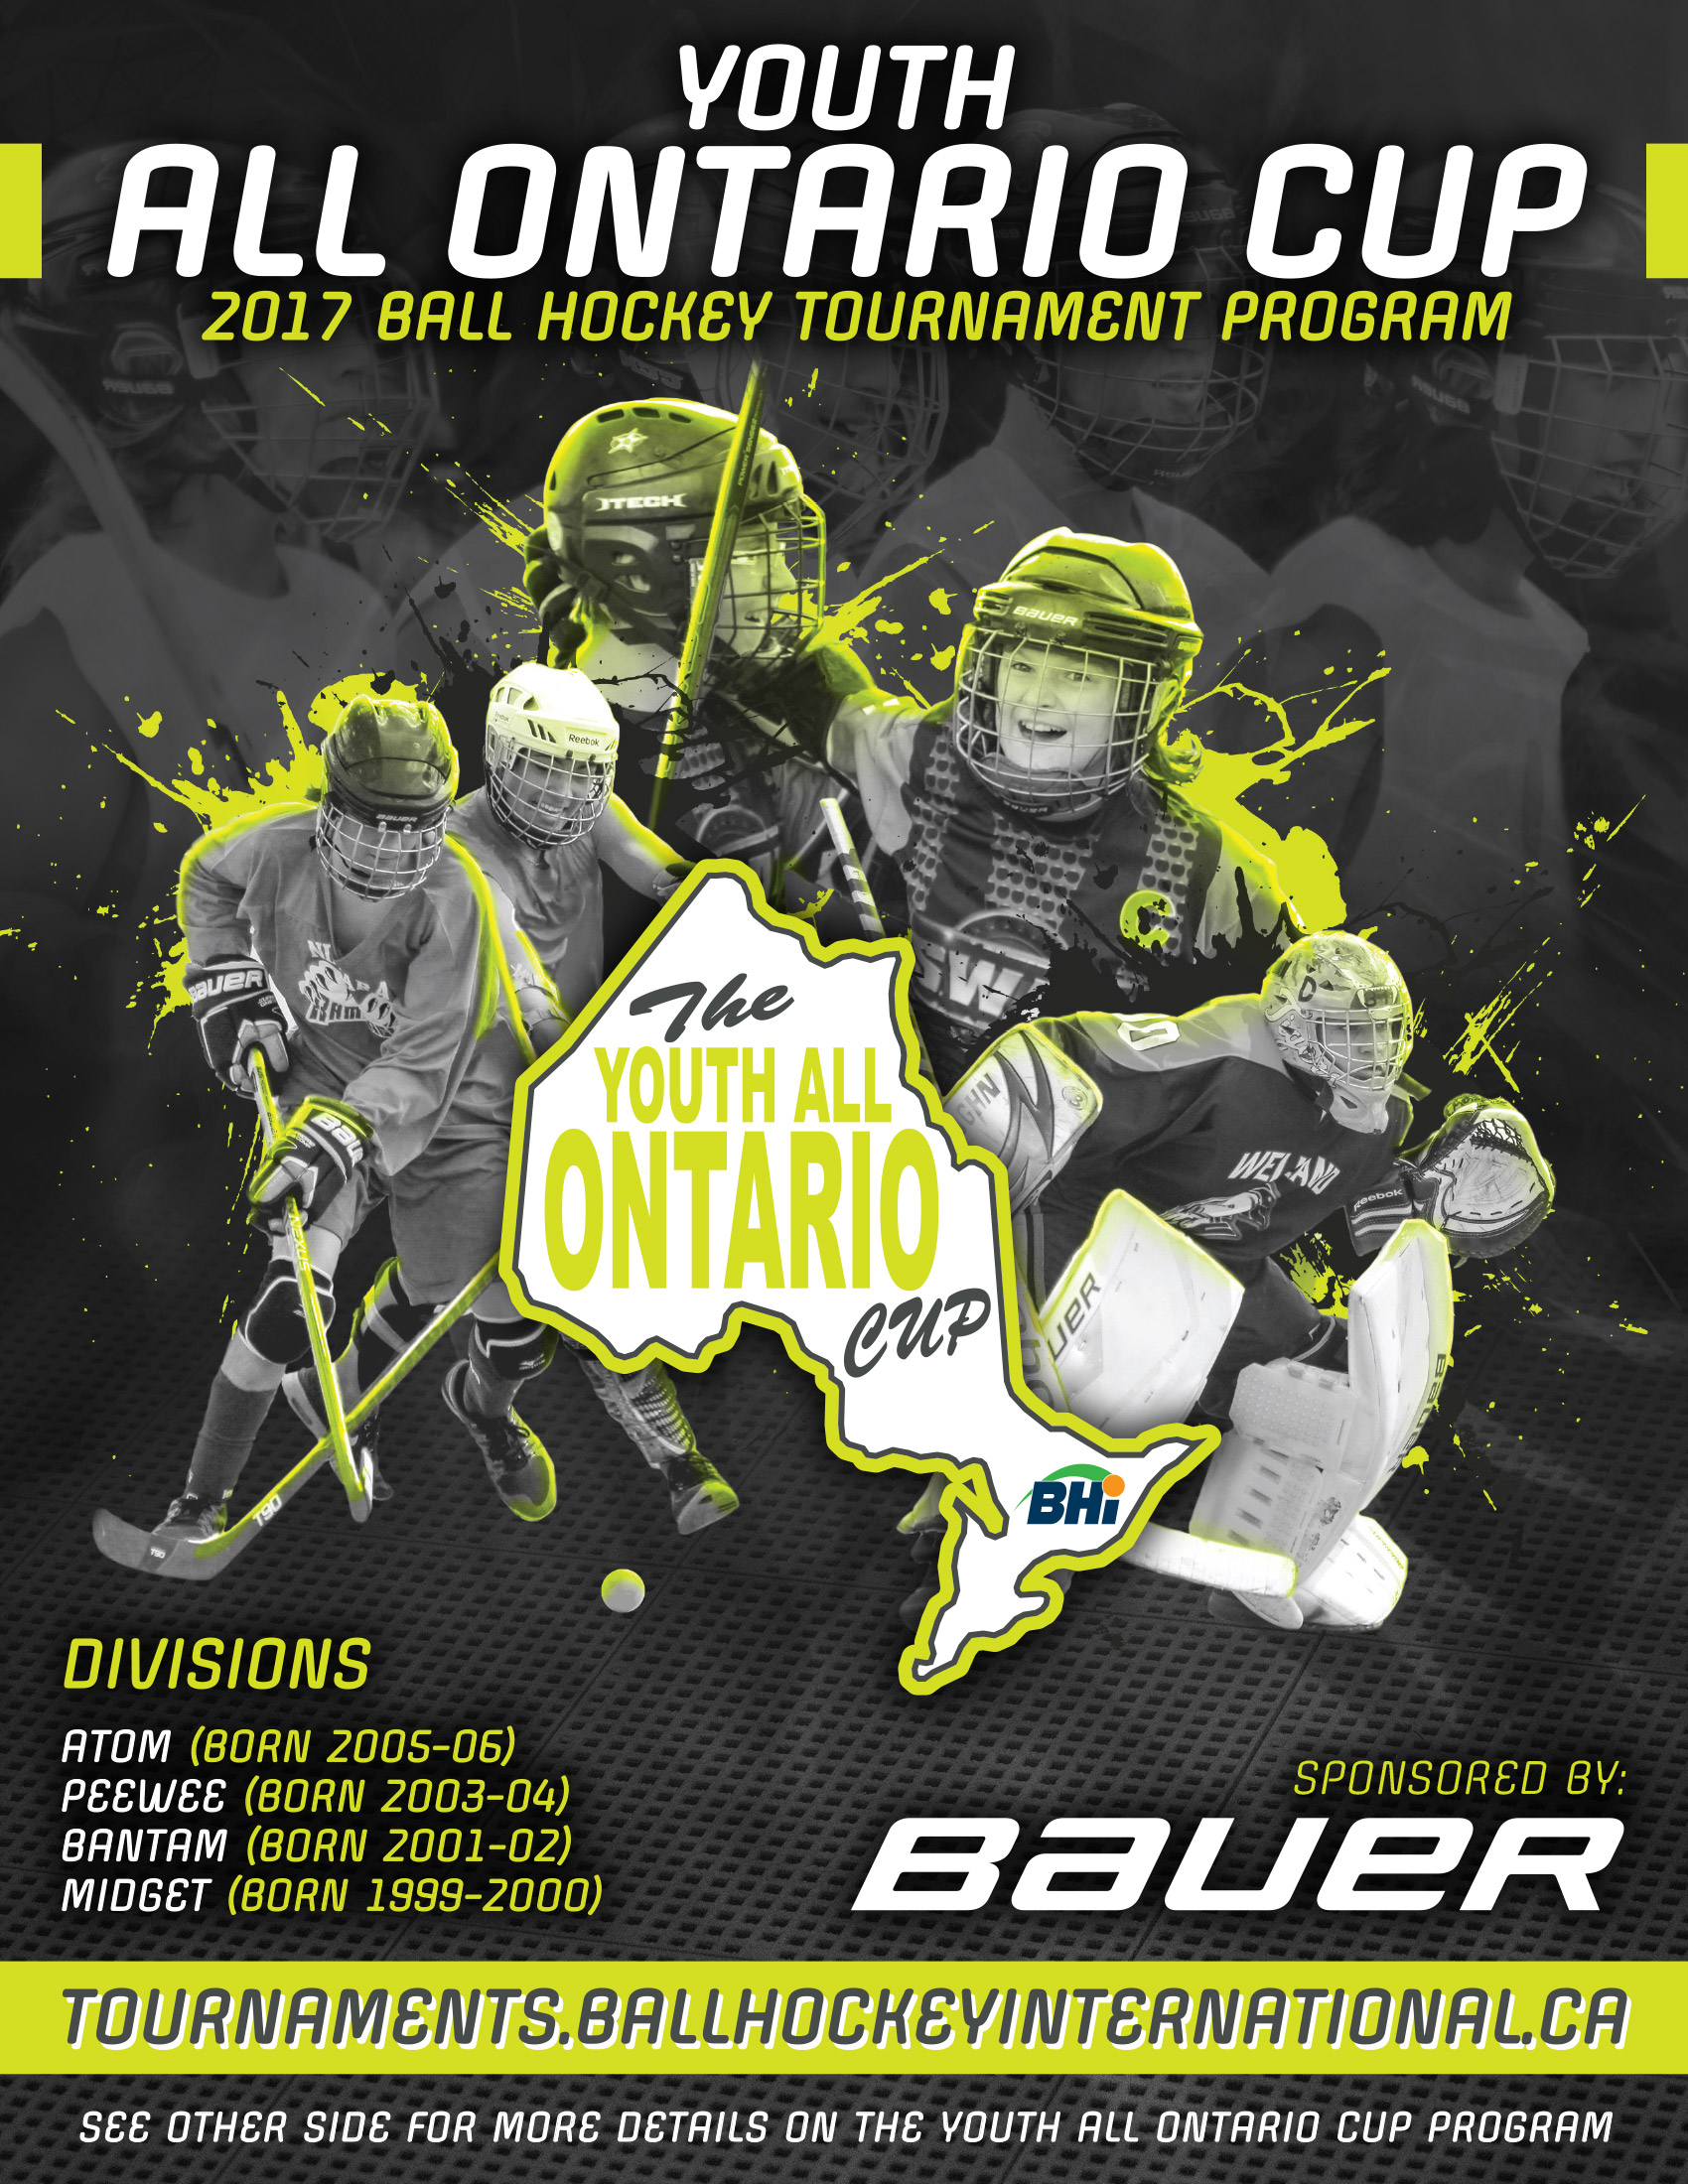 Youth All Ontario Cup Bhi Tournaments